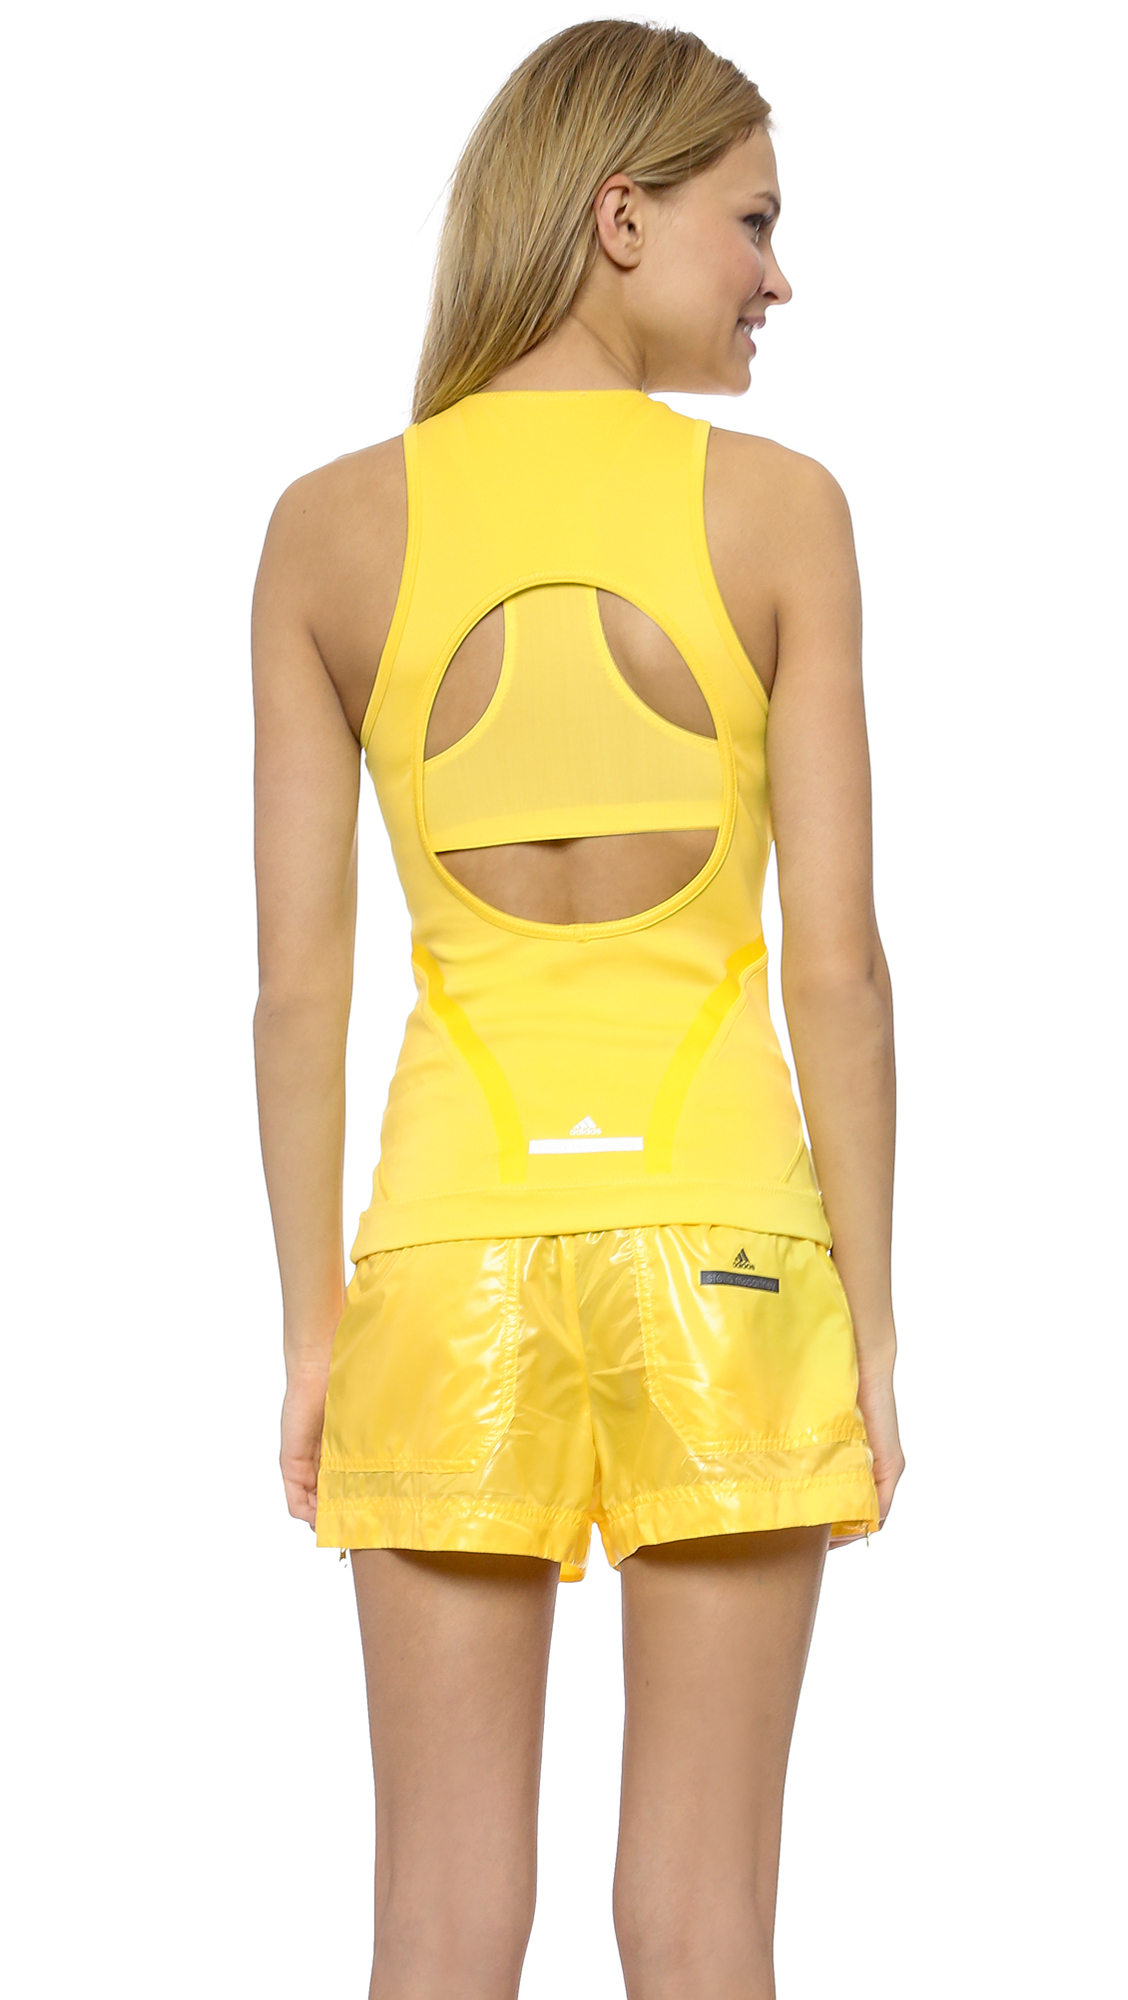 adidas by stella mccartney run perf tank top glow yellow in yellow lyst. Black Bedroom Furniture Sets. Home Design Ideas